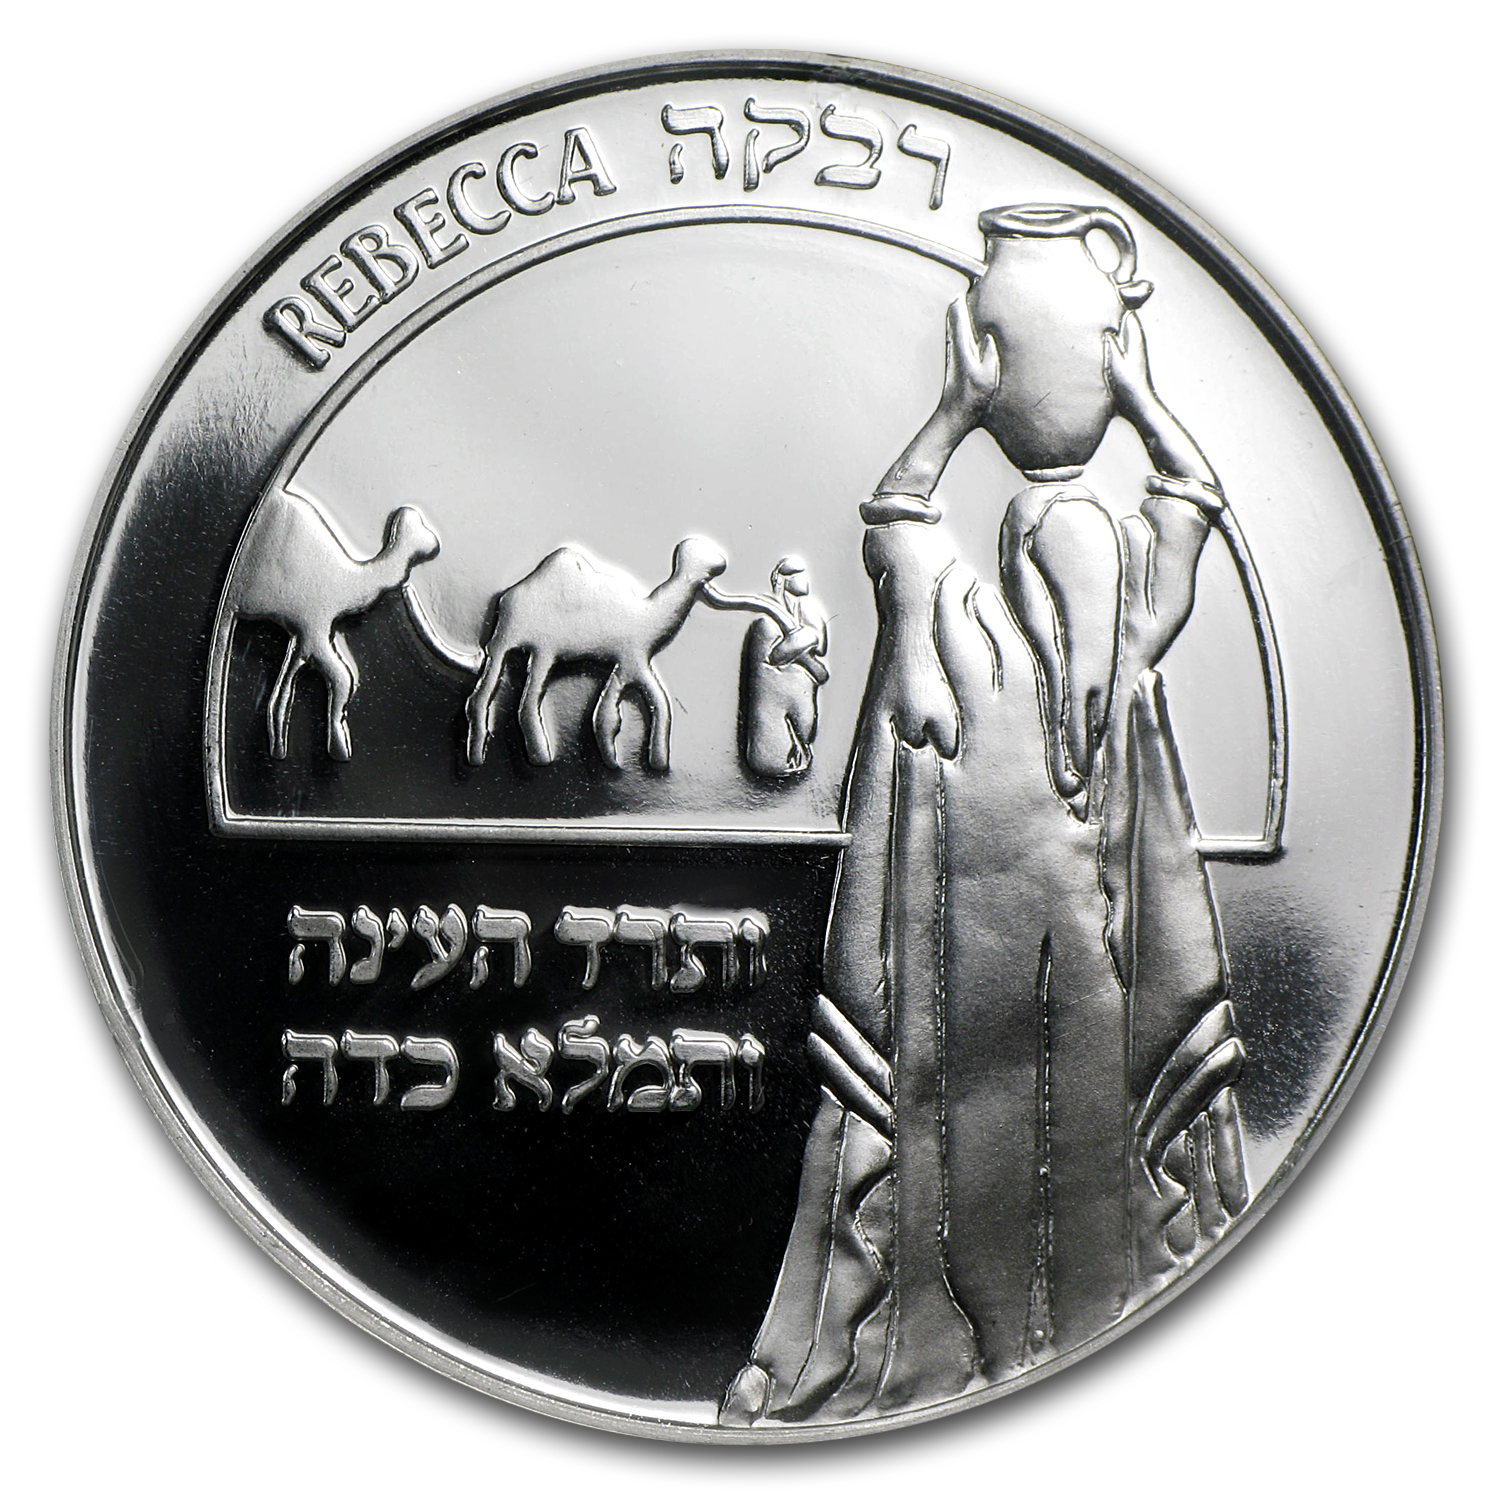 2007 Israel Rebecca Silver Medal Proof (ASW .643)